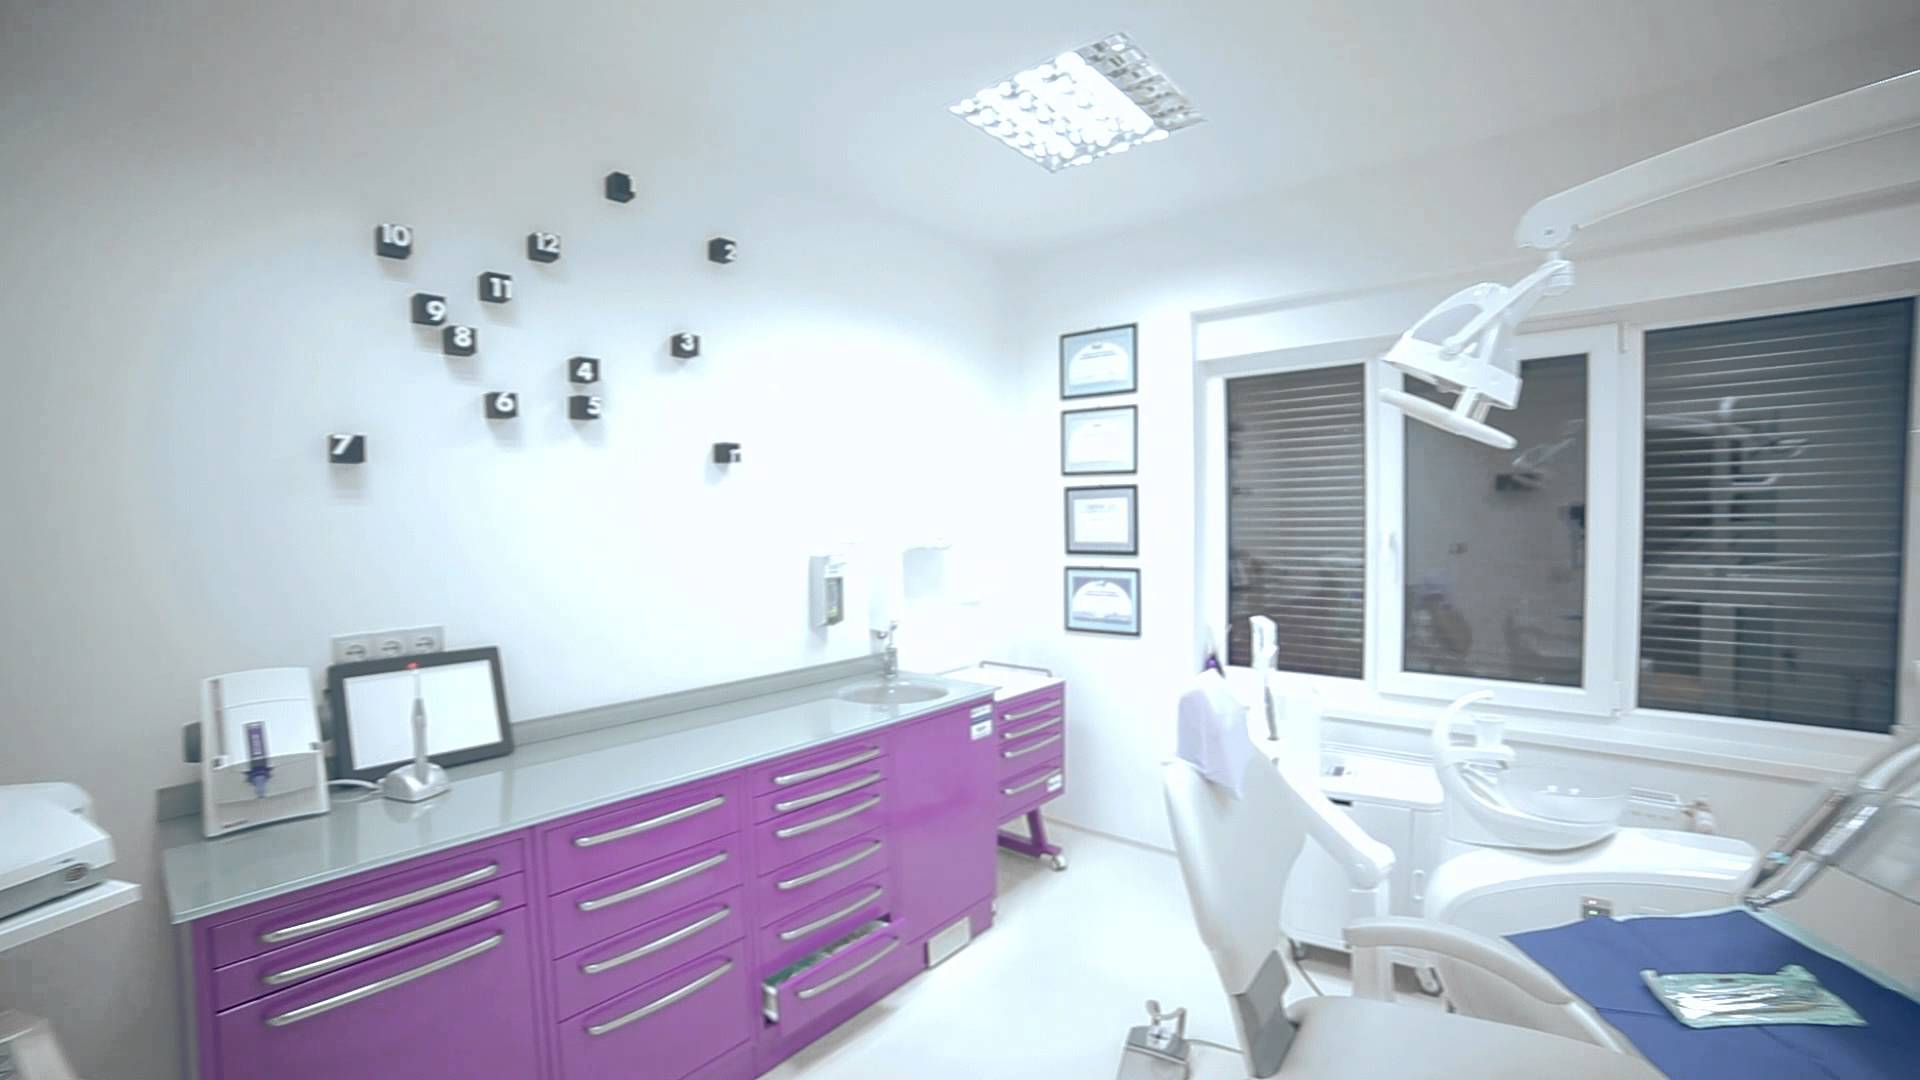 Dental Office Wallpaper - WallpaperSafari